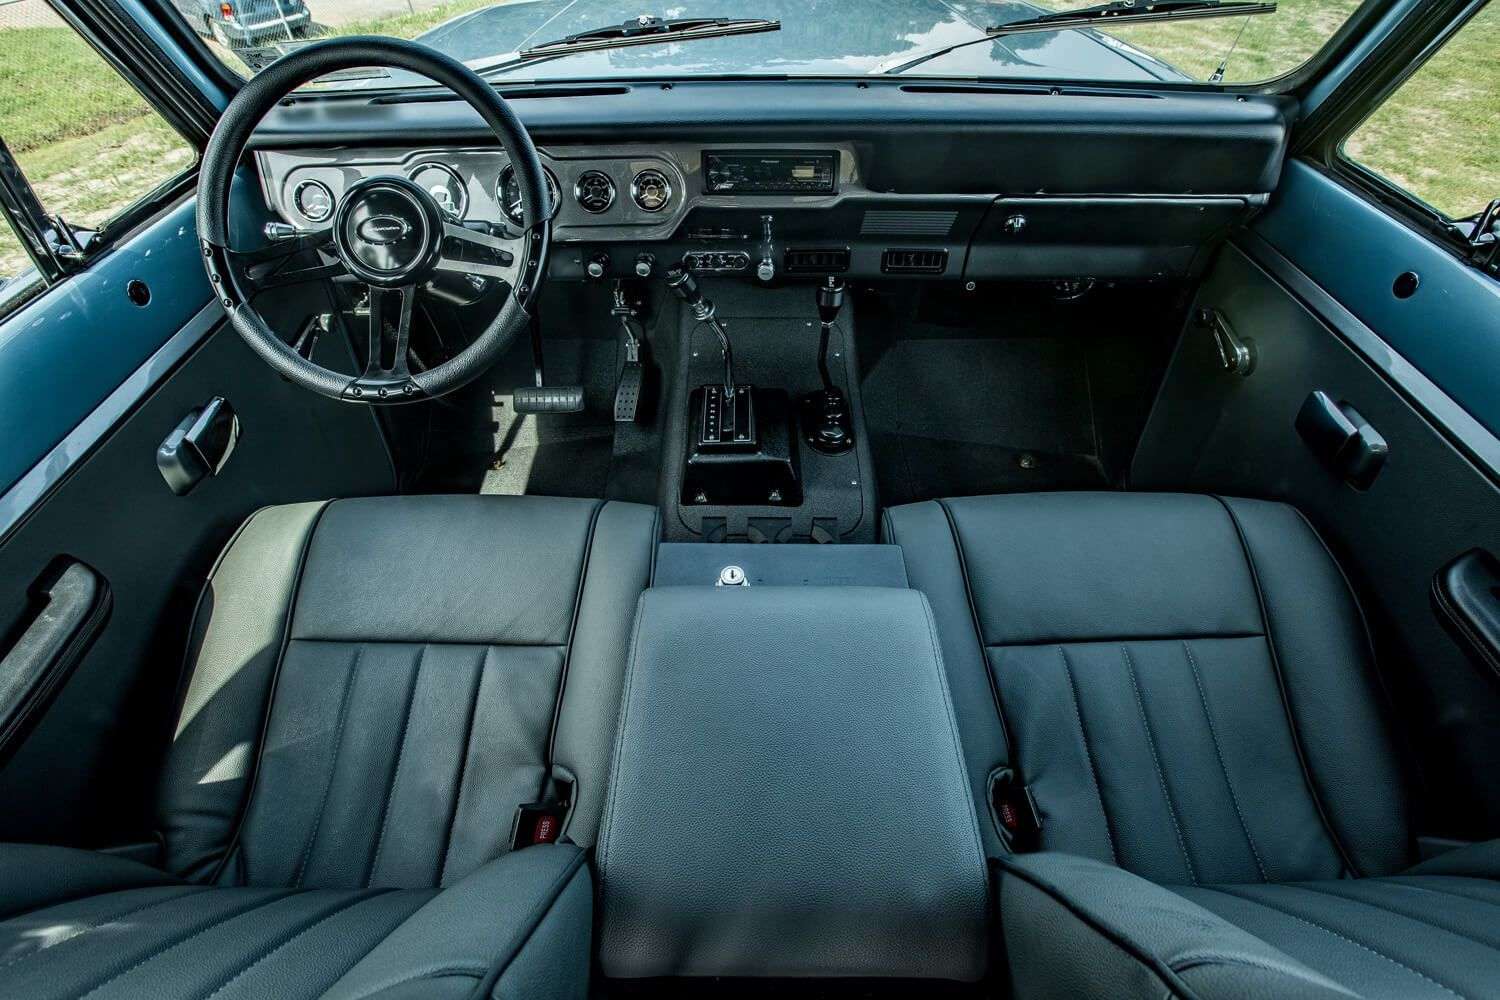 Restored 1973 International Scout Ii Velocity Restorations International Scout Ii International Scout International Harvester Scout